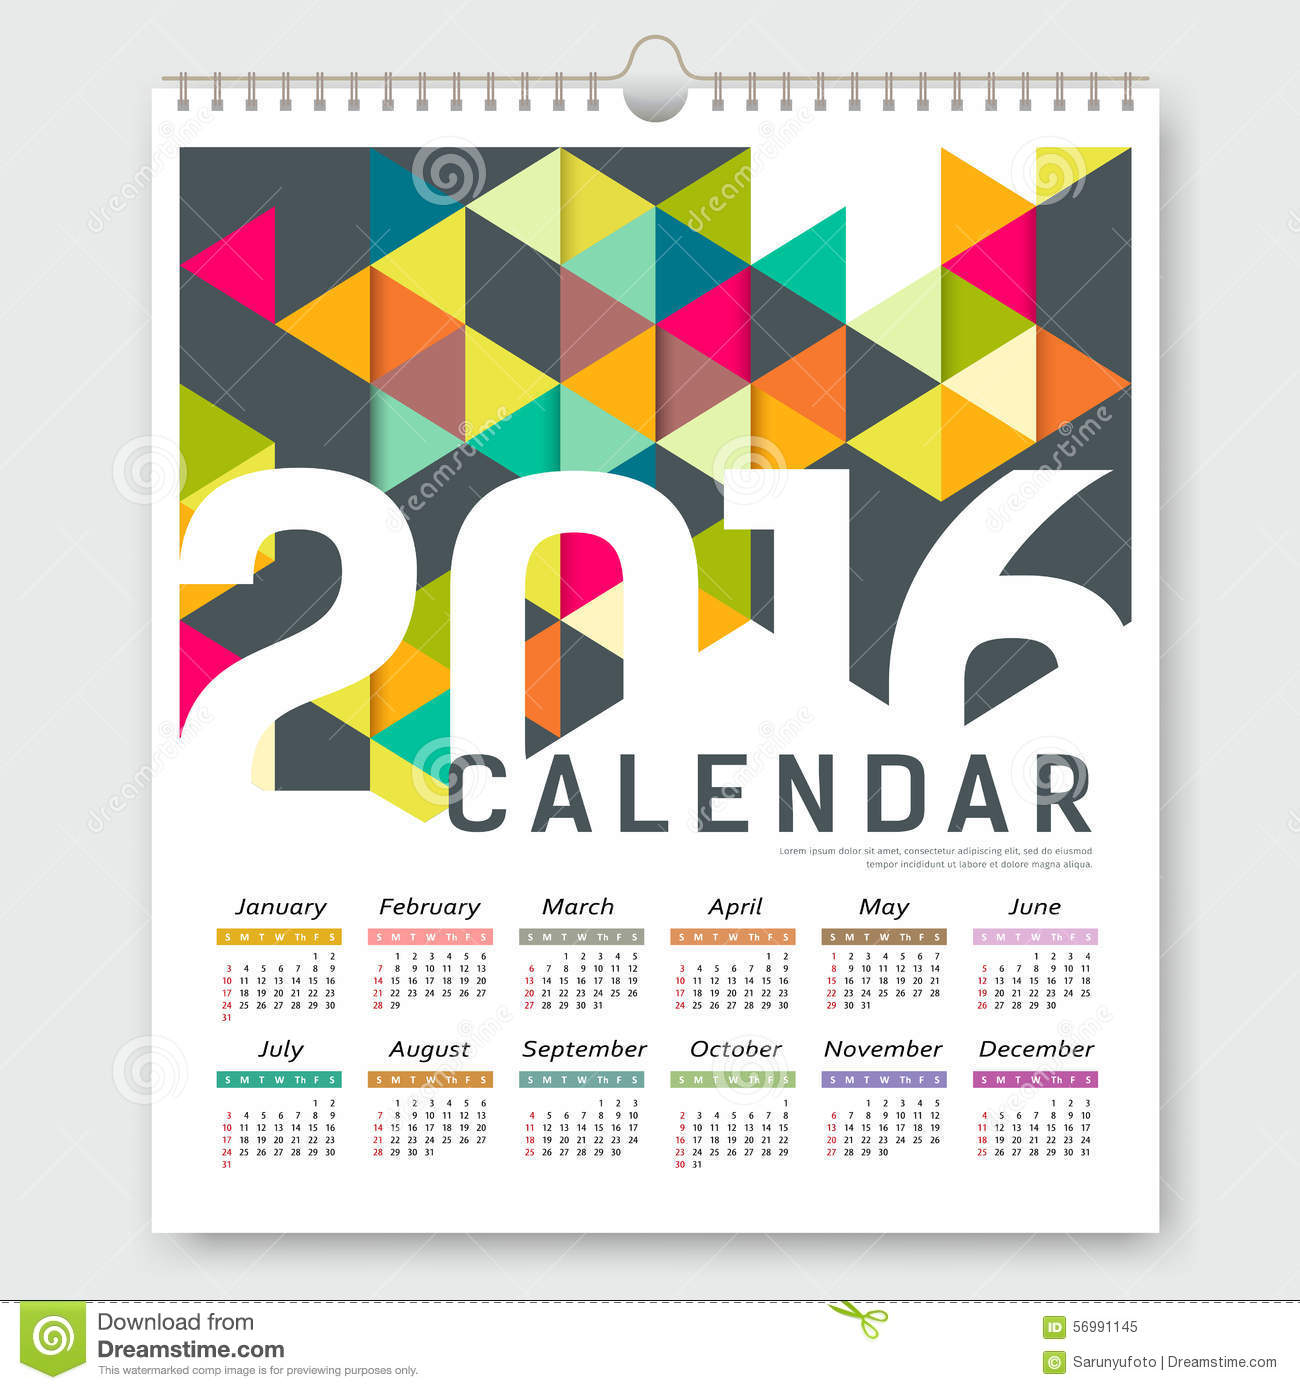 Illustration Calendar Design : Calendar colorful triangle geometric design stock